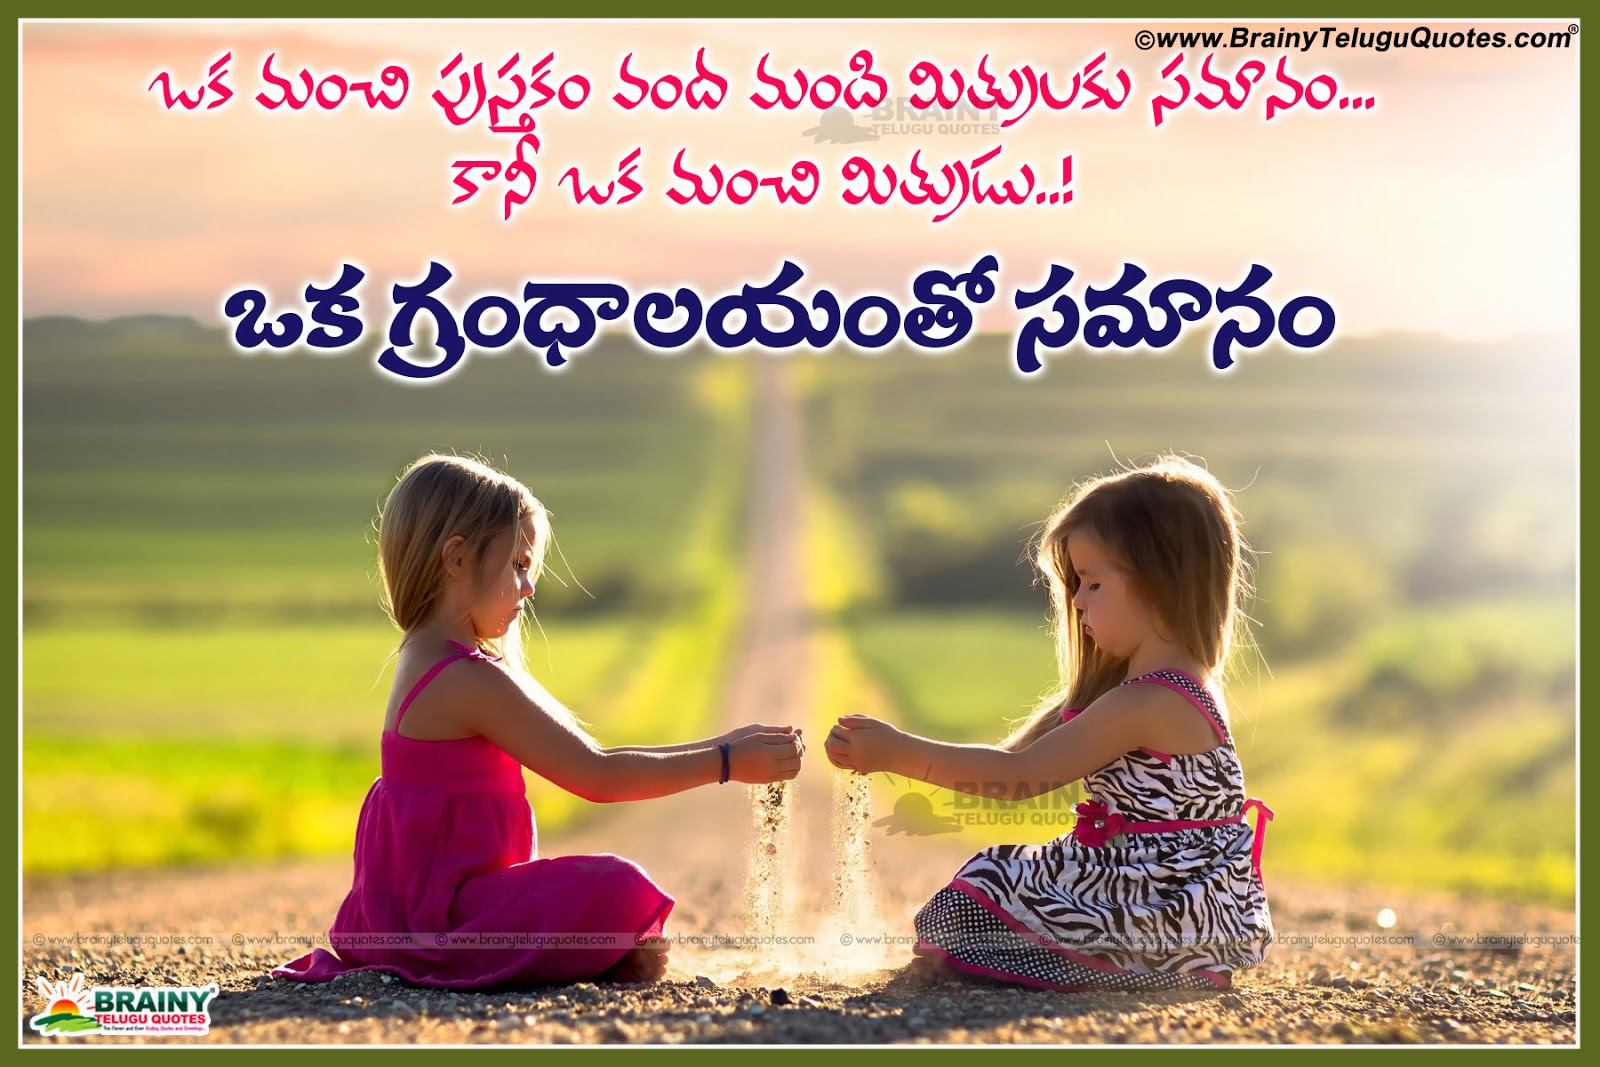 English Quotes About Friendship Latest Telugu Friendship Quotes With Cute Children Hd Wallpapers